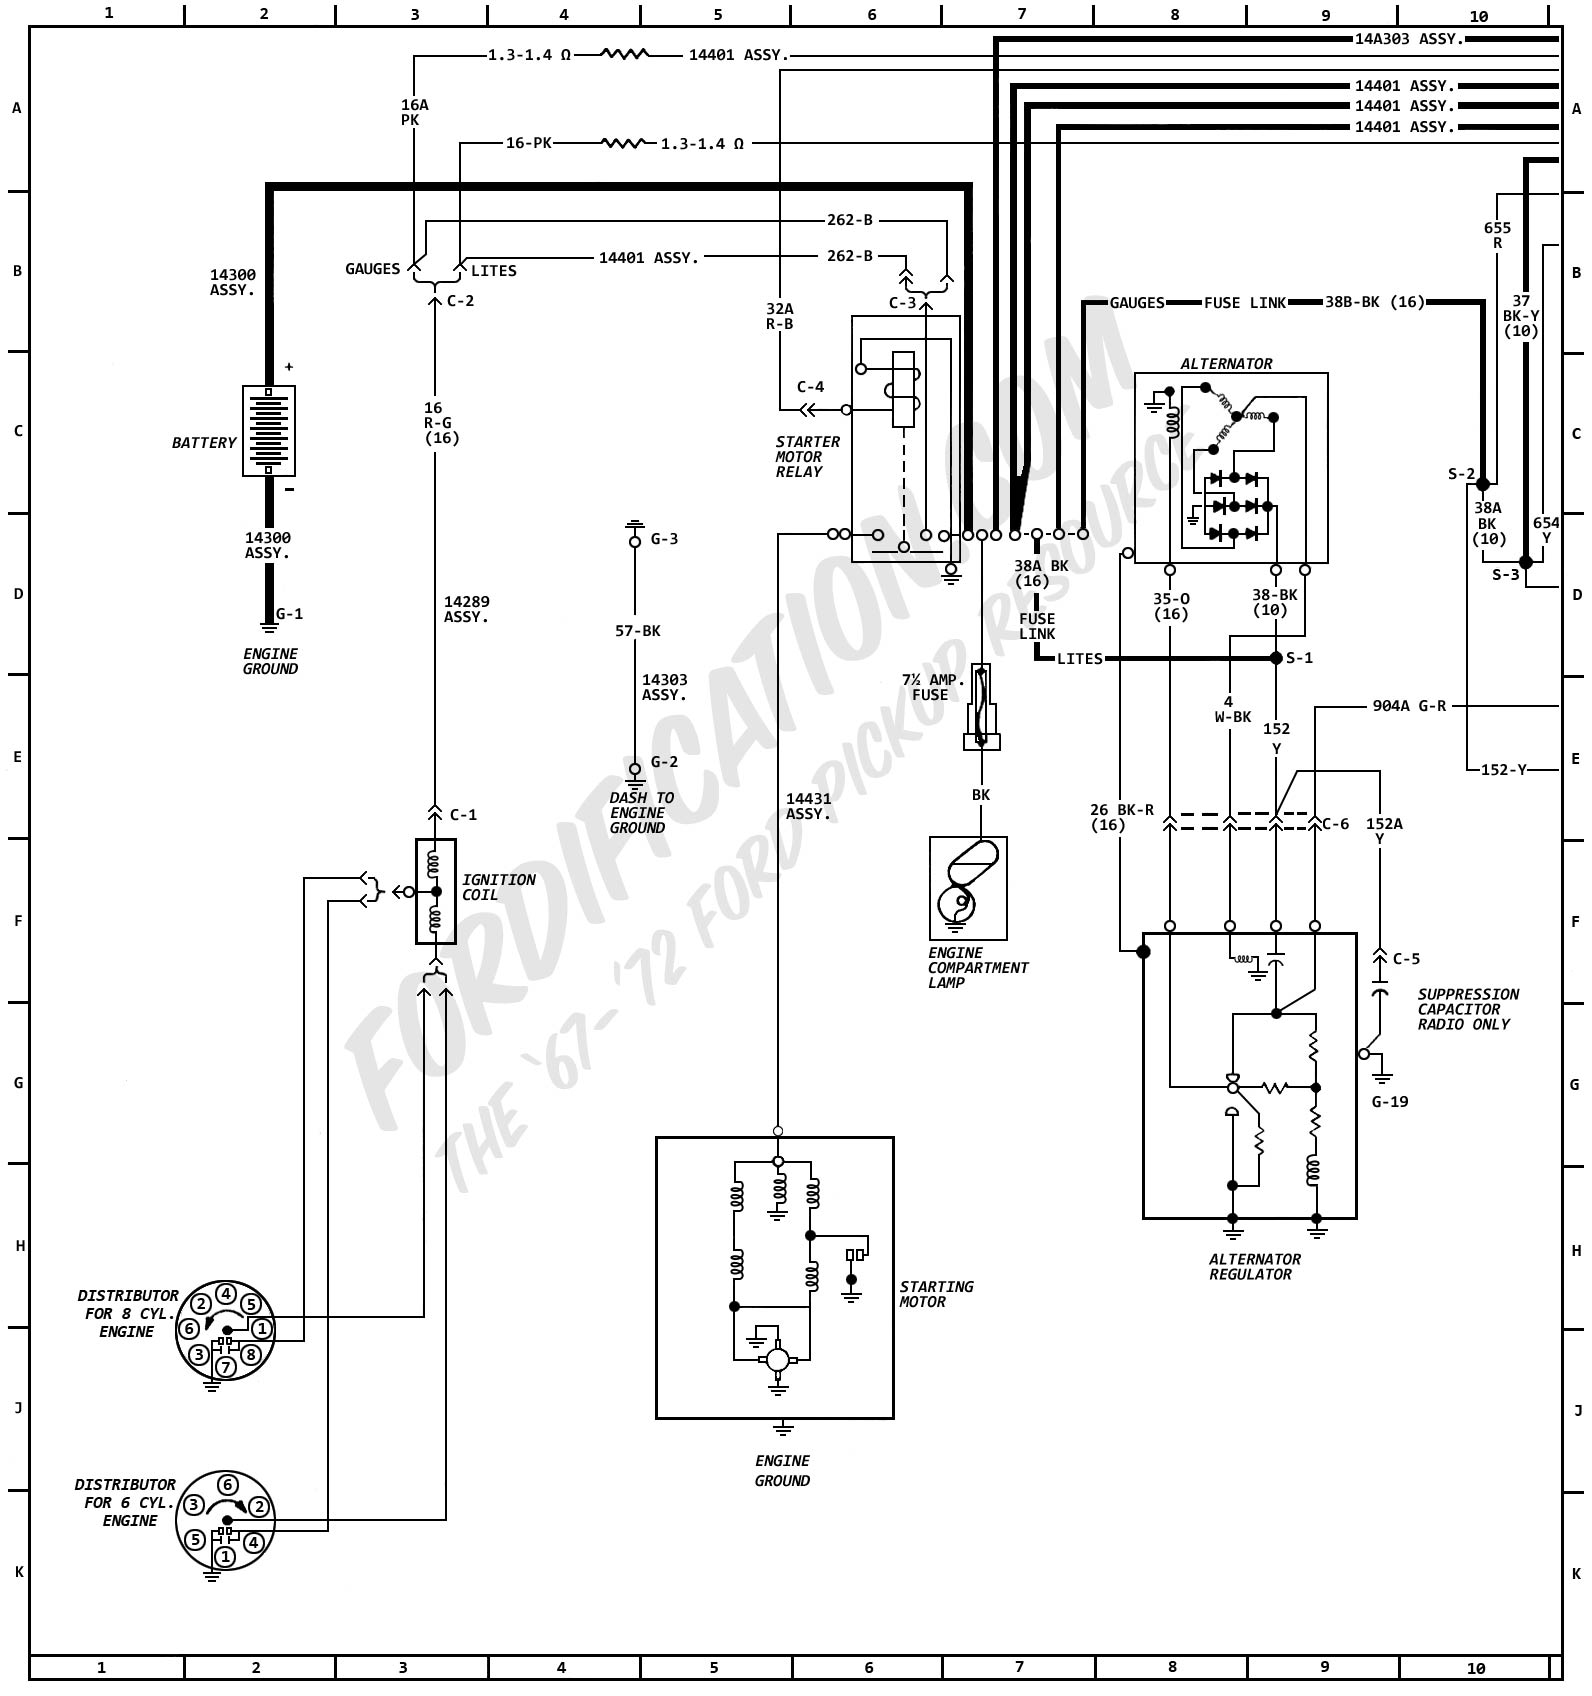 1972MasterWiring_01 1972 ford truck wiring diagrams fordification com electrical wiring diagram ford courier at reclaimingppi.co